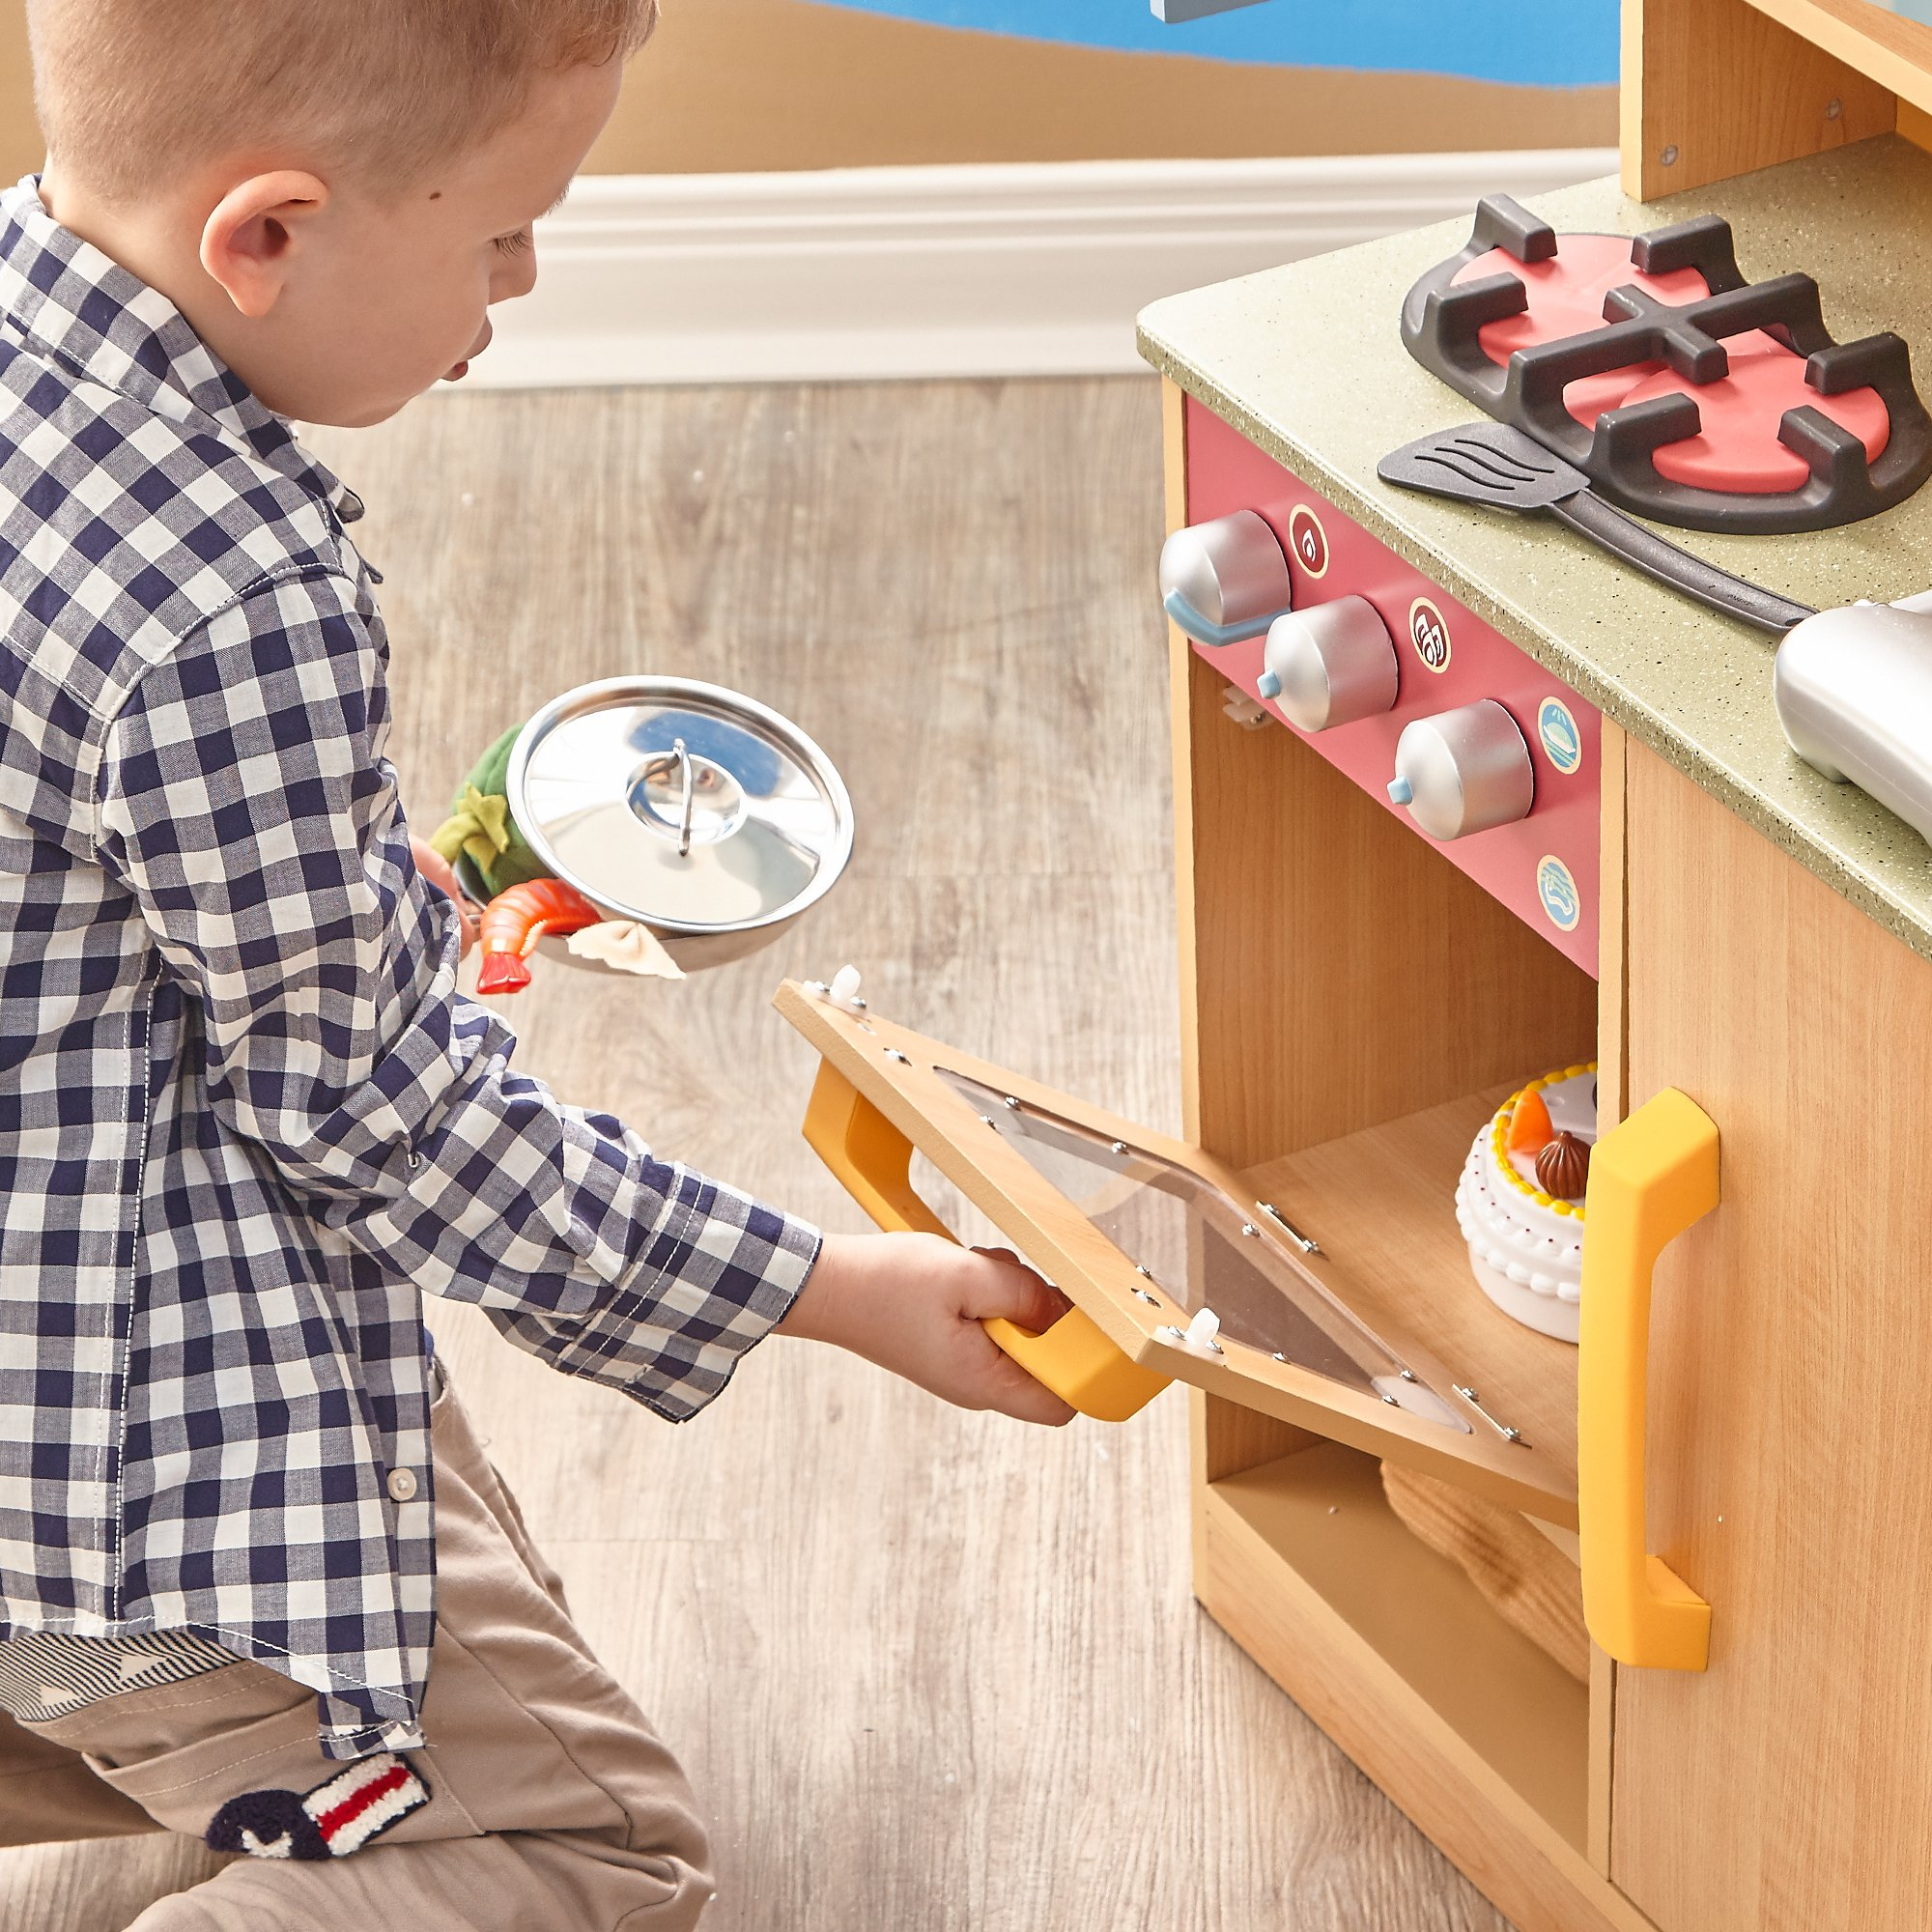 Teamson Kids - Little Chef Florence Classic Kids Play Kitchen | Toddler Pretend Play Set with Accessories - Wood Grain by Teamson Kids (Image #3)